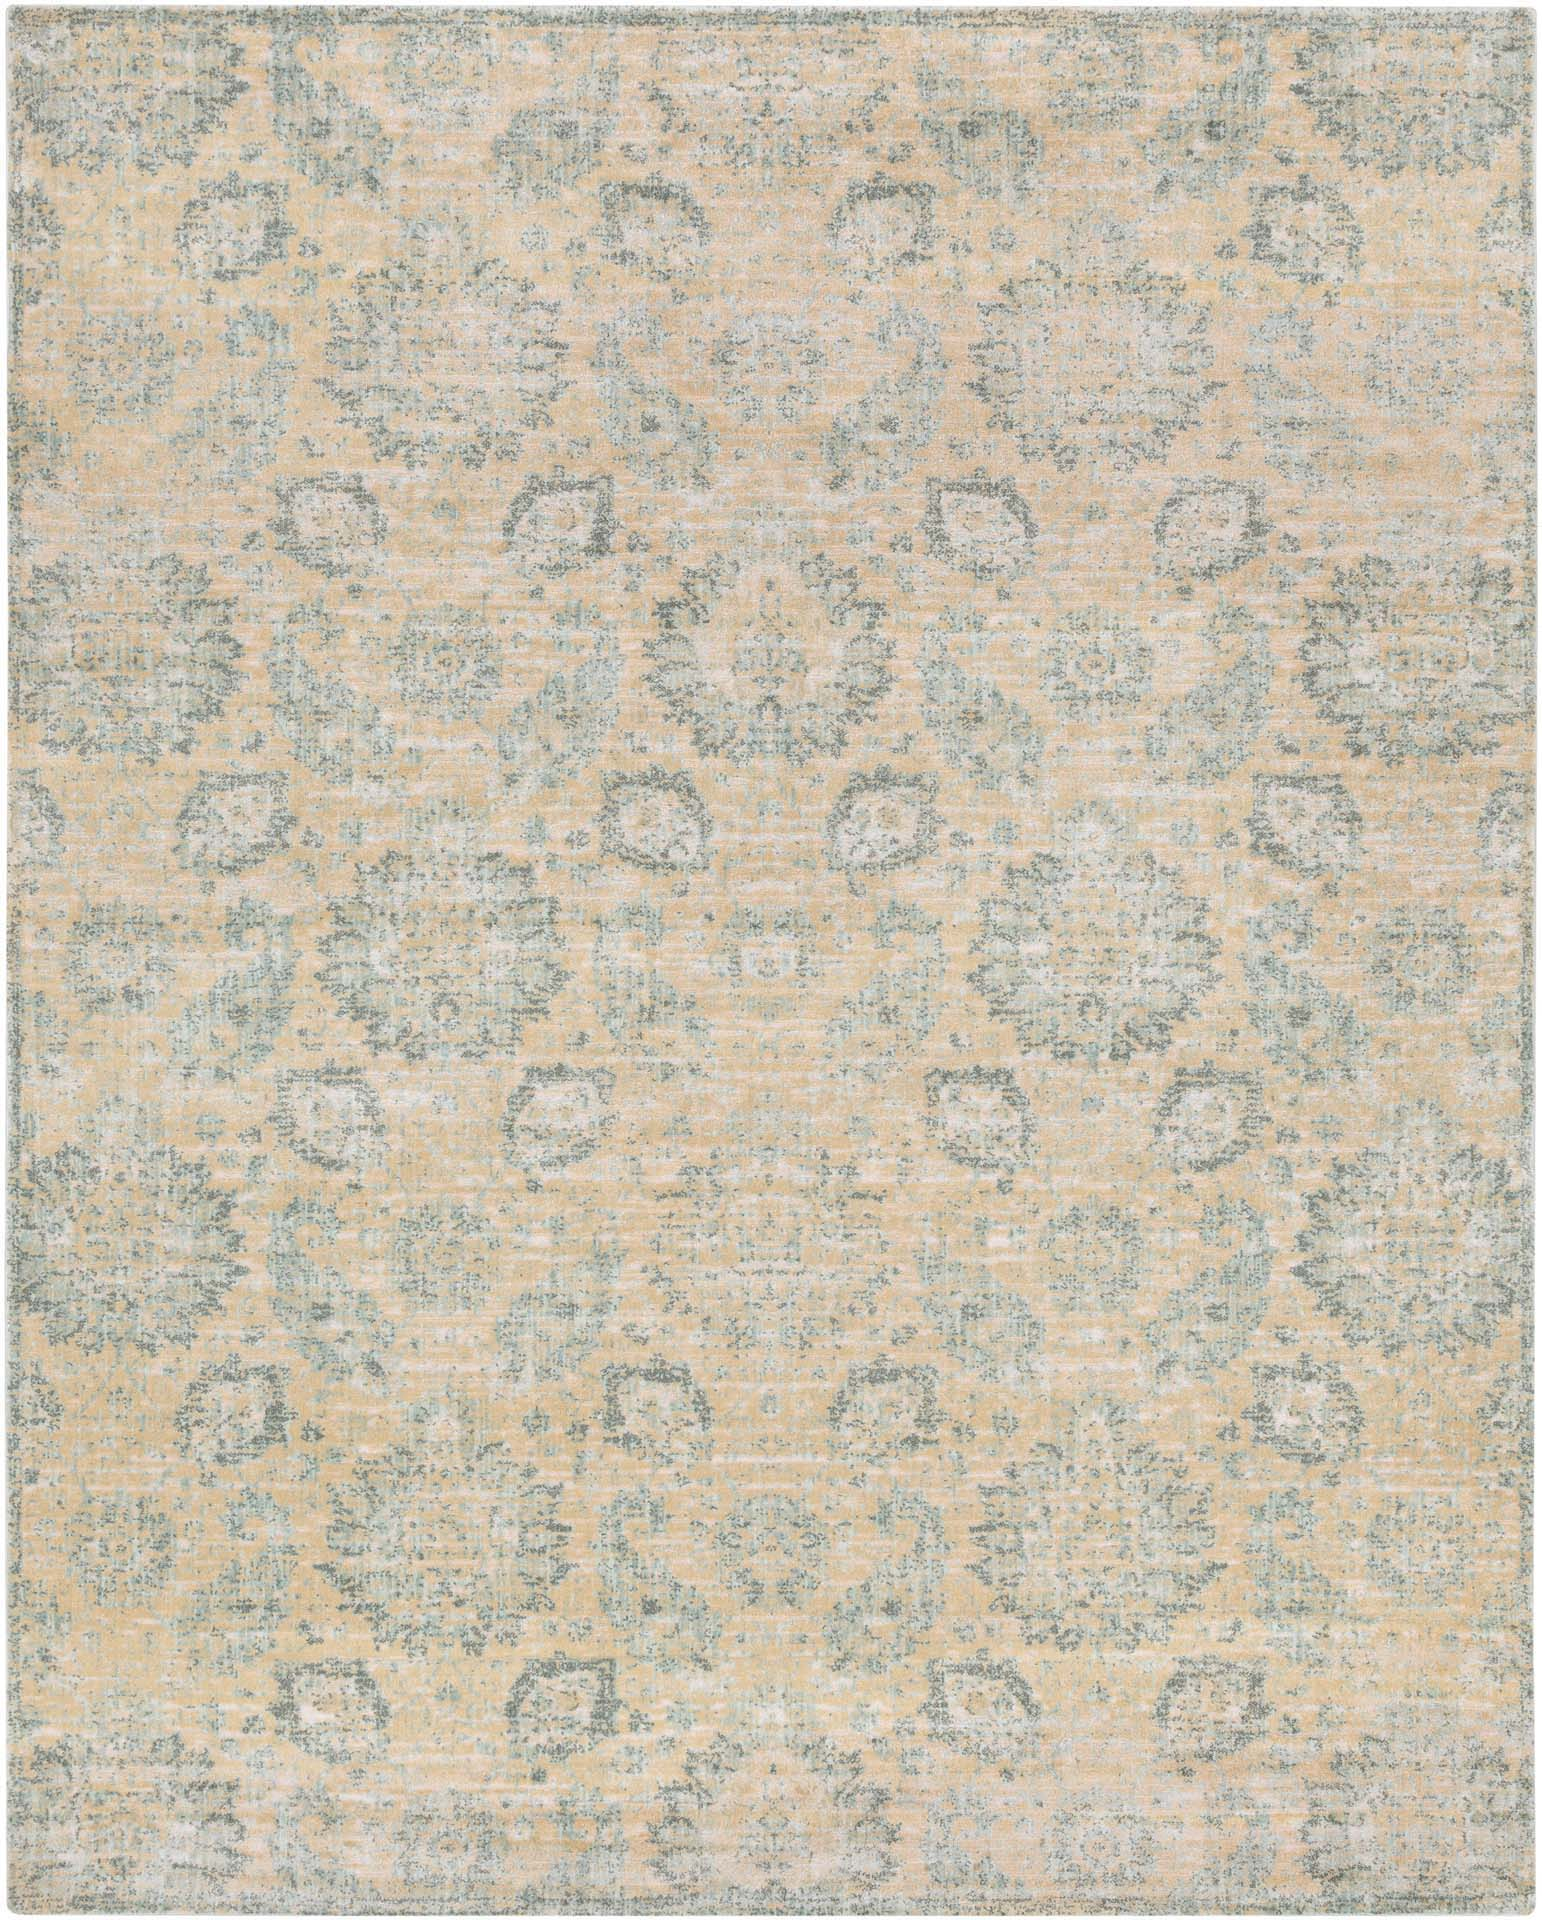 Machine made Egyptian area rug in beige with gray and aqua accents